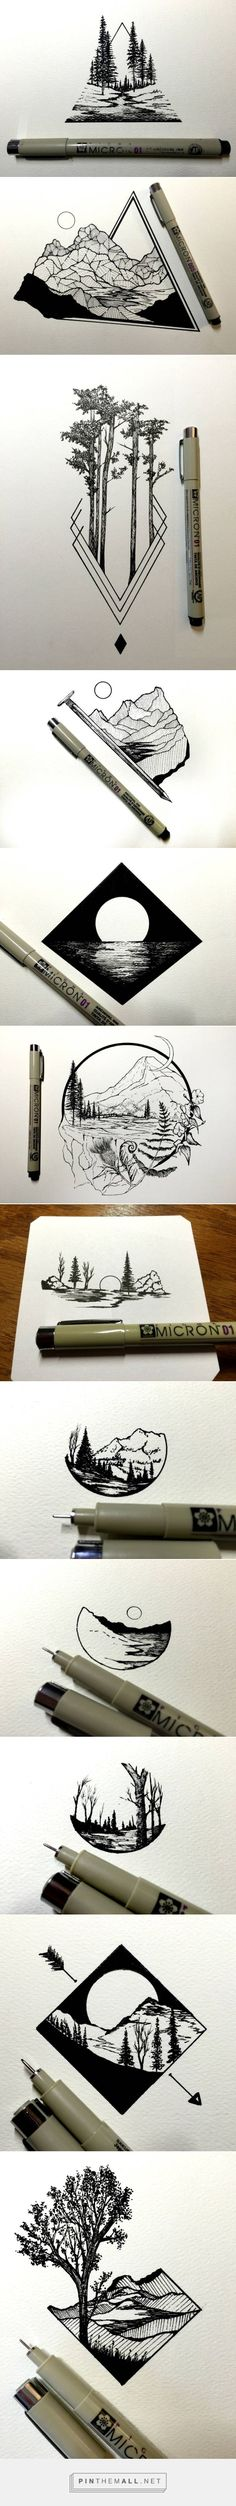 Tatto Ideas 2017 Daily Drawings by Derek Myers Fubiz Media a grouped images picture Illustration, Daily Drawing, Pen Art, Cool Drawings, Simple Drawings, Simple Nature Drawing, Pencil Drawings, Dragon Drawings, Charcoal Drawings